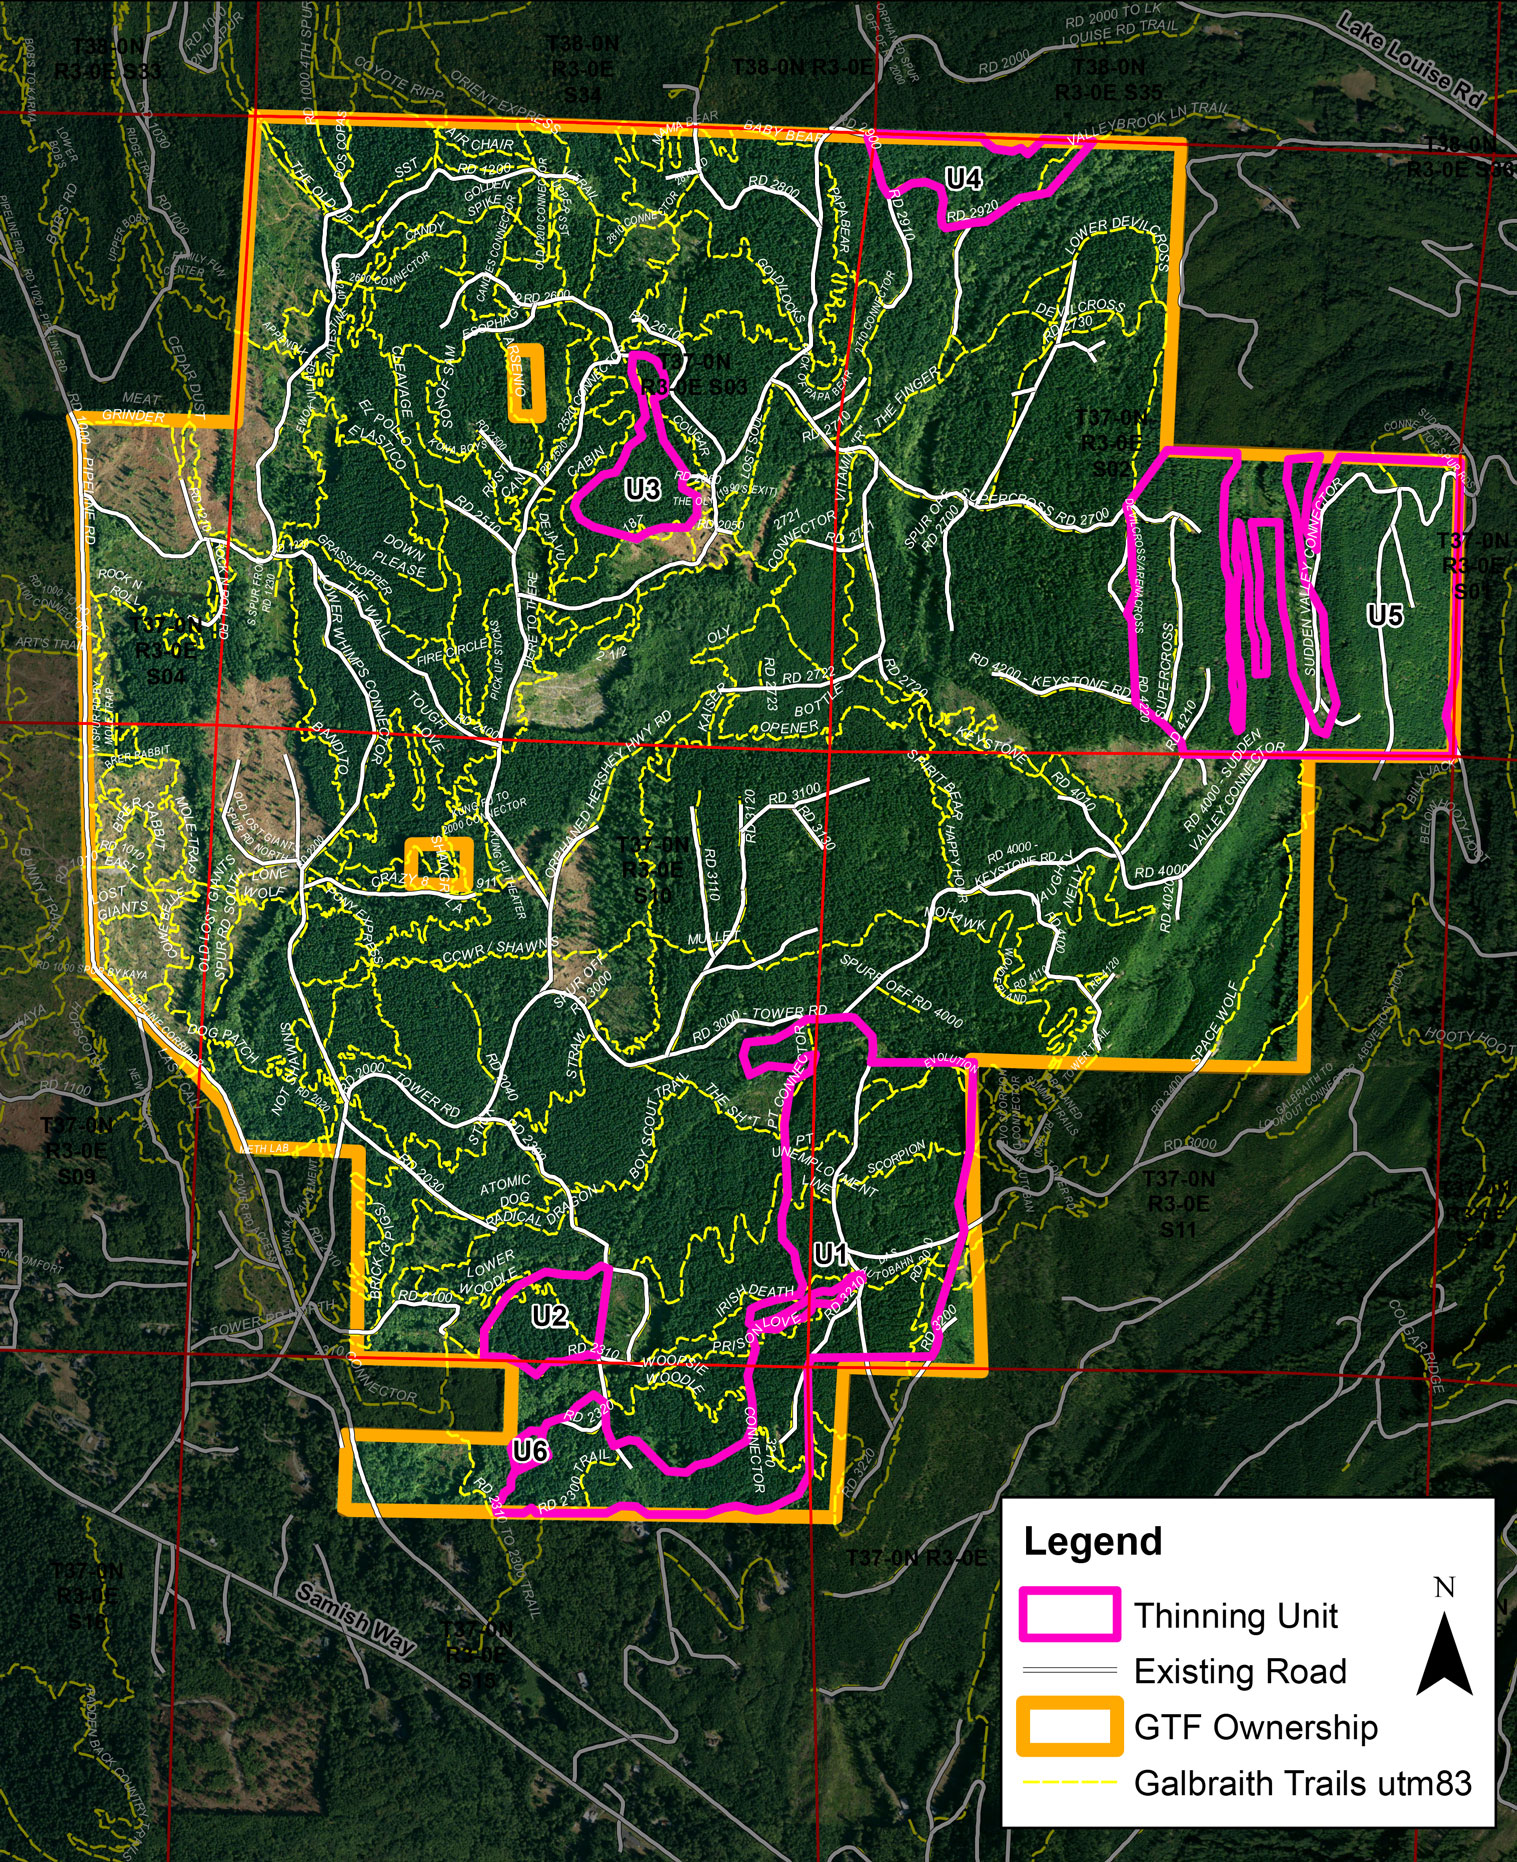 Map of Planned Timber Thinning Operations And Trails At Galbraith Tree Farm